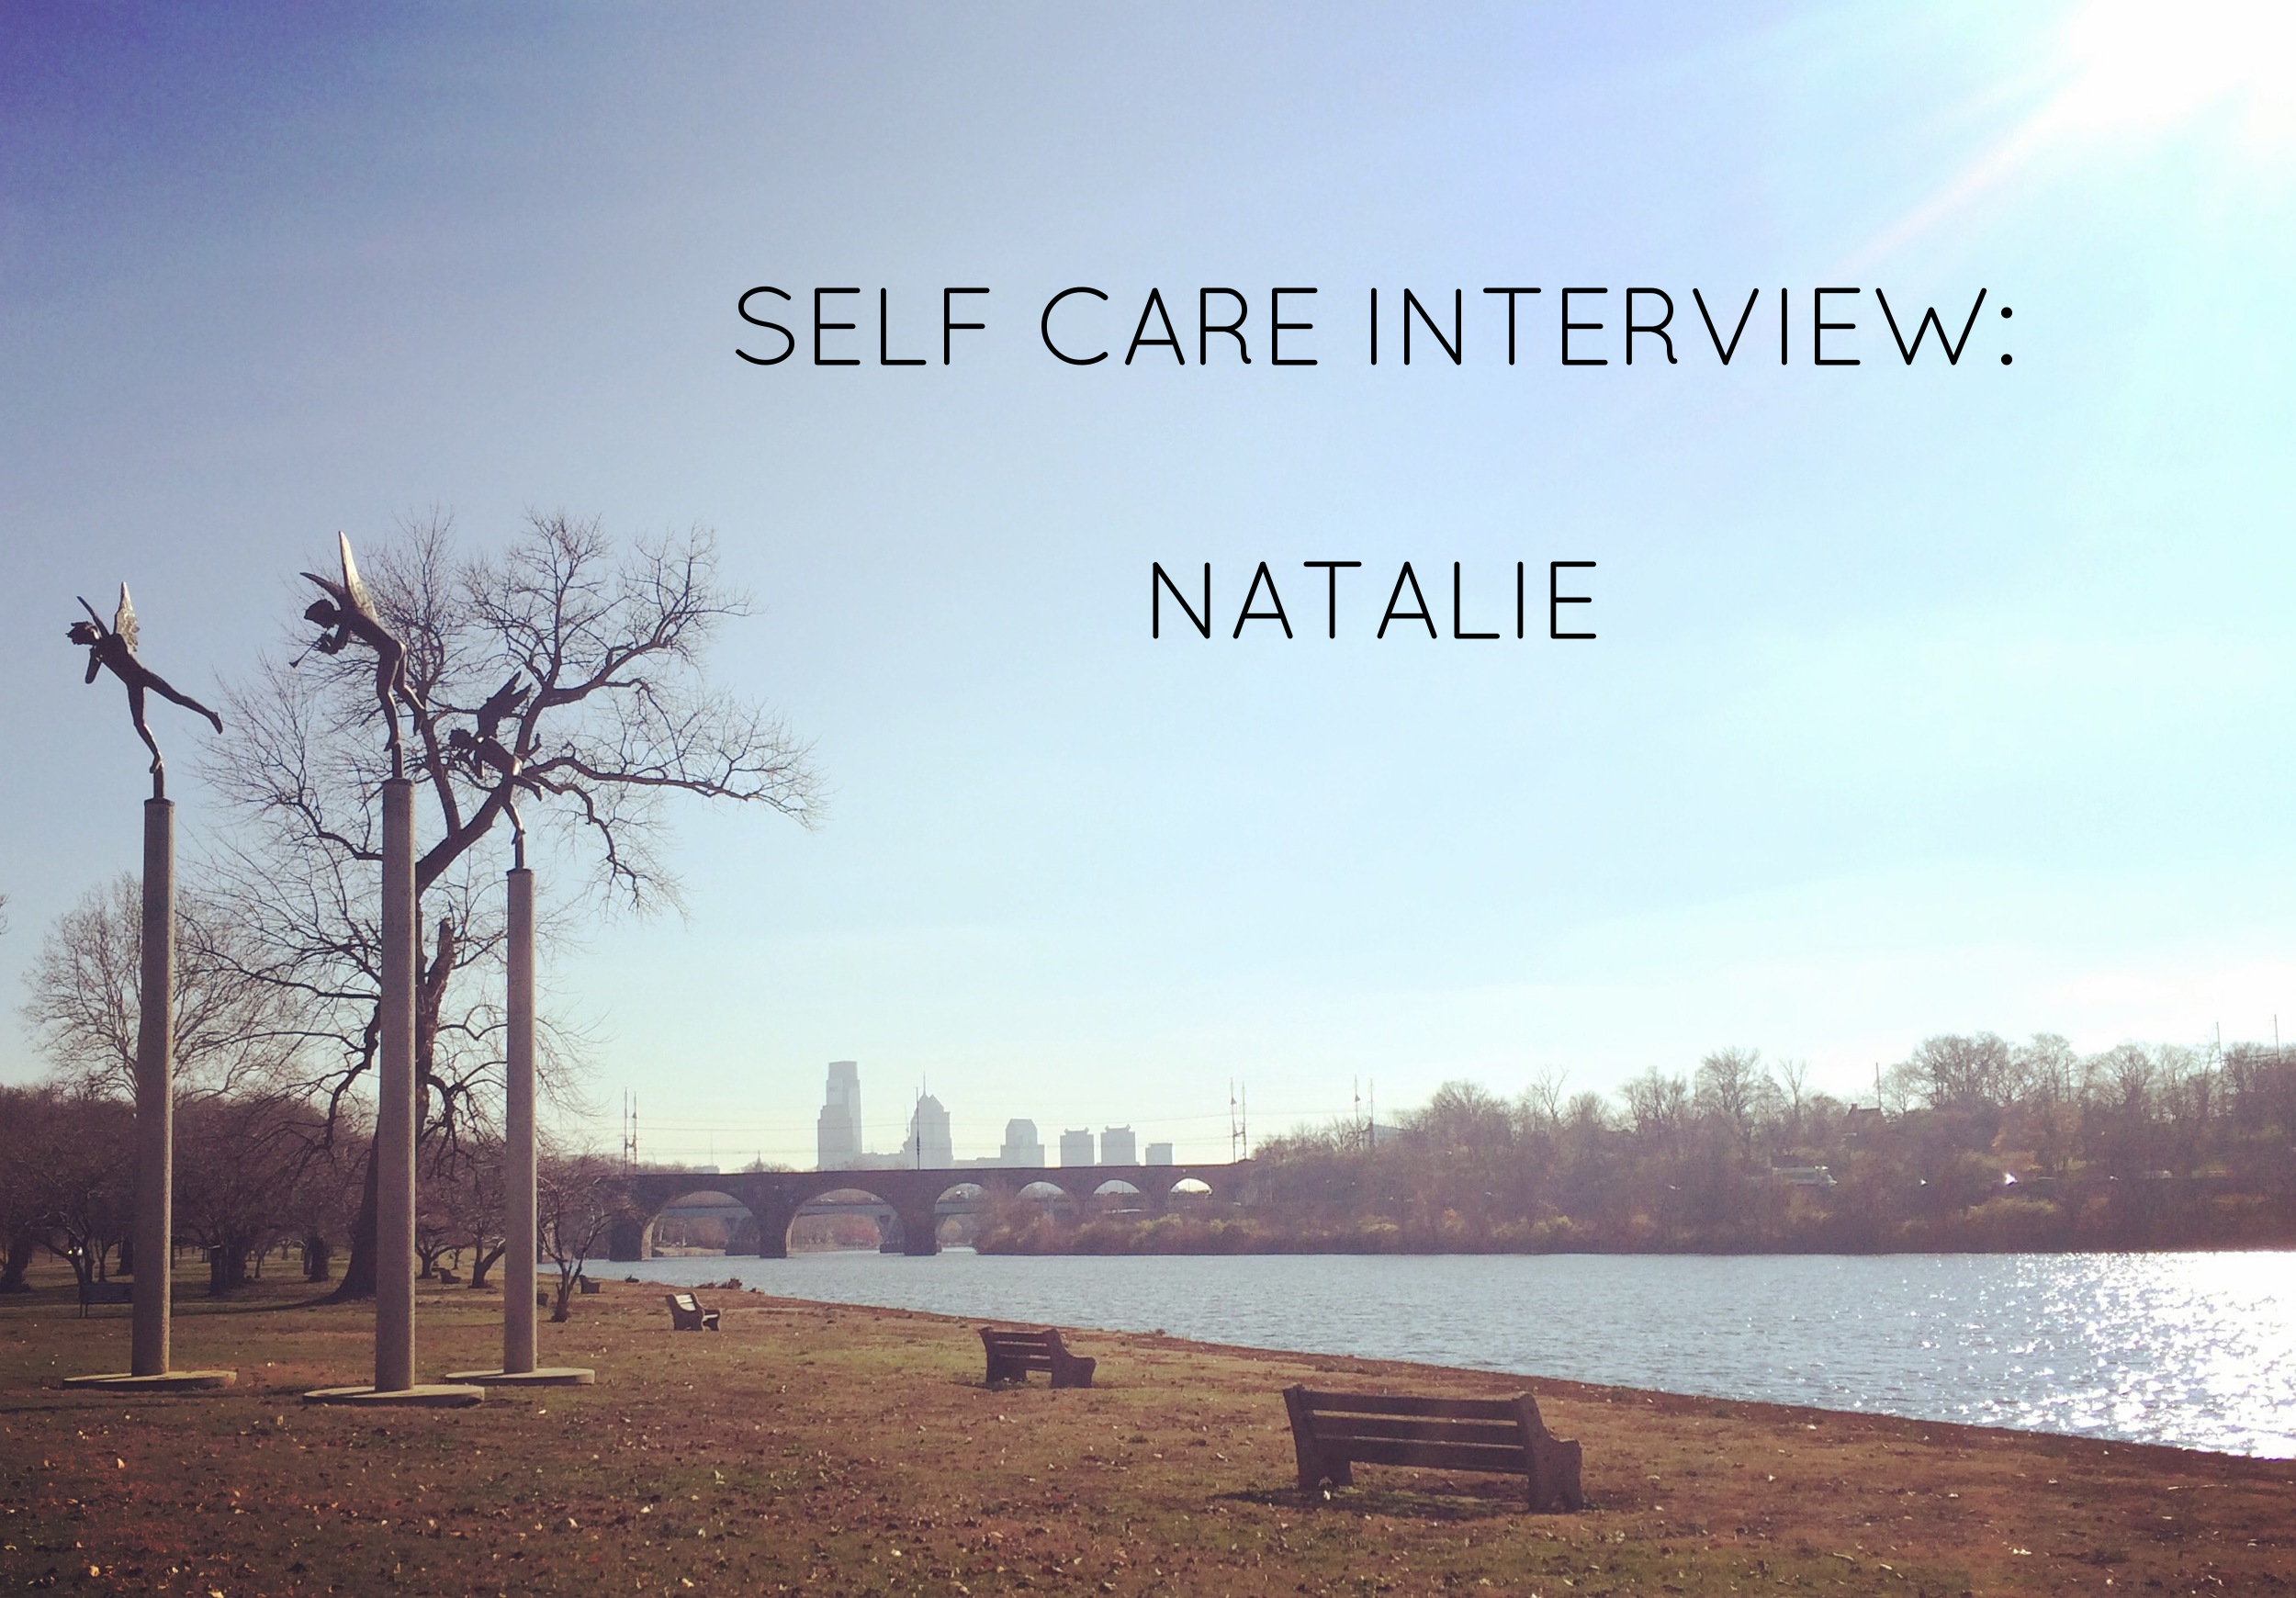 Natalie currently lives in Philly.  Photo: Schuykill River- an important self care location for her- with the Philadelphia skyline in distance